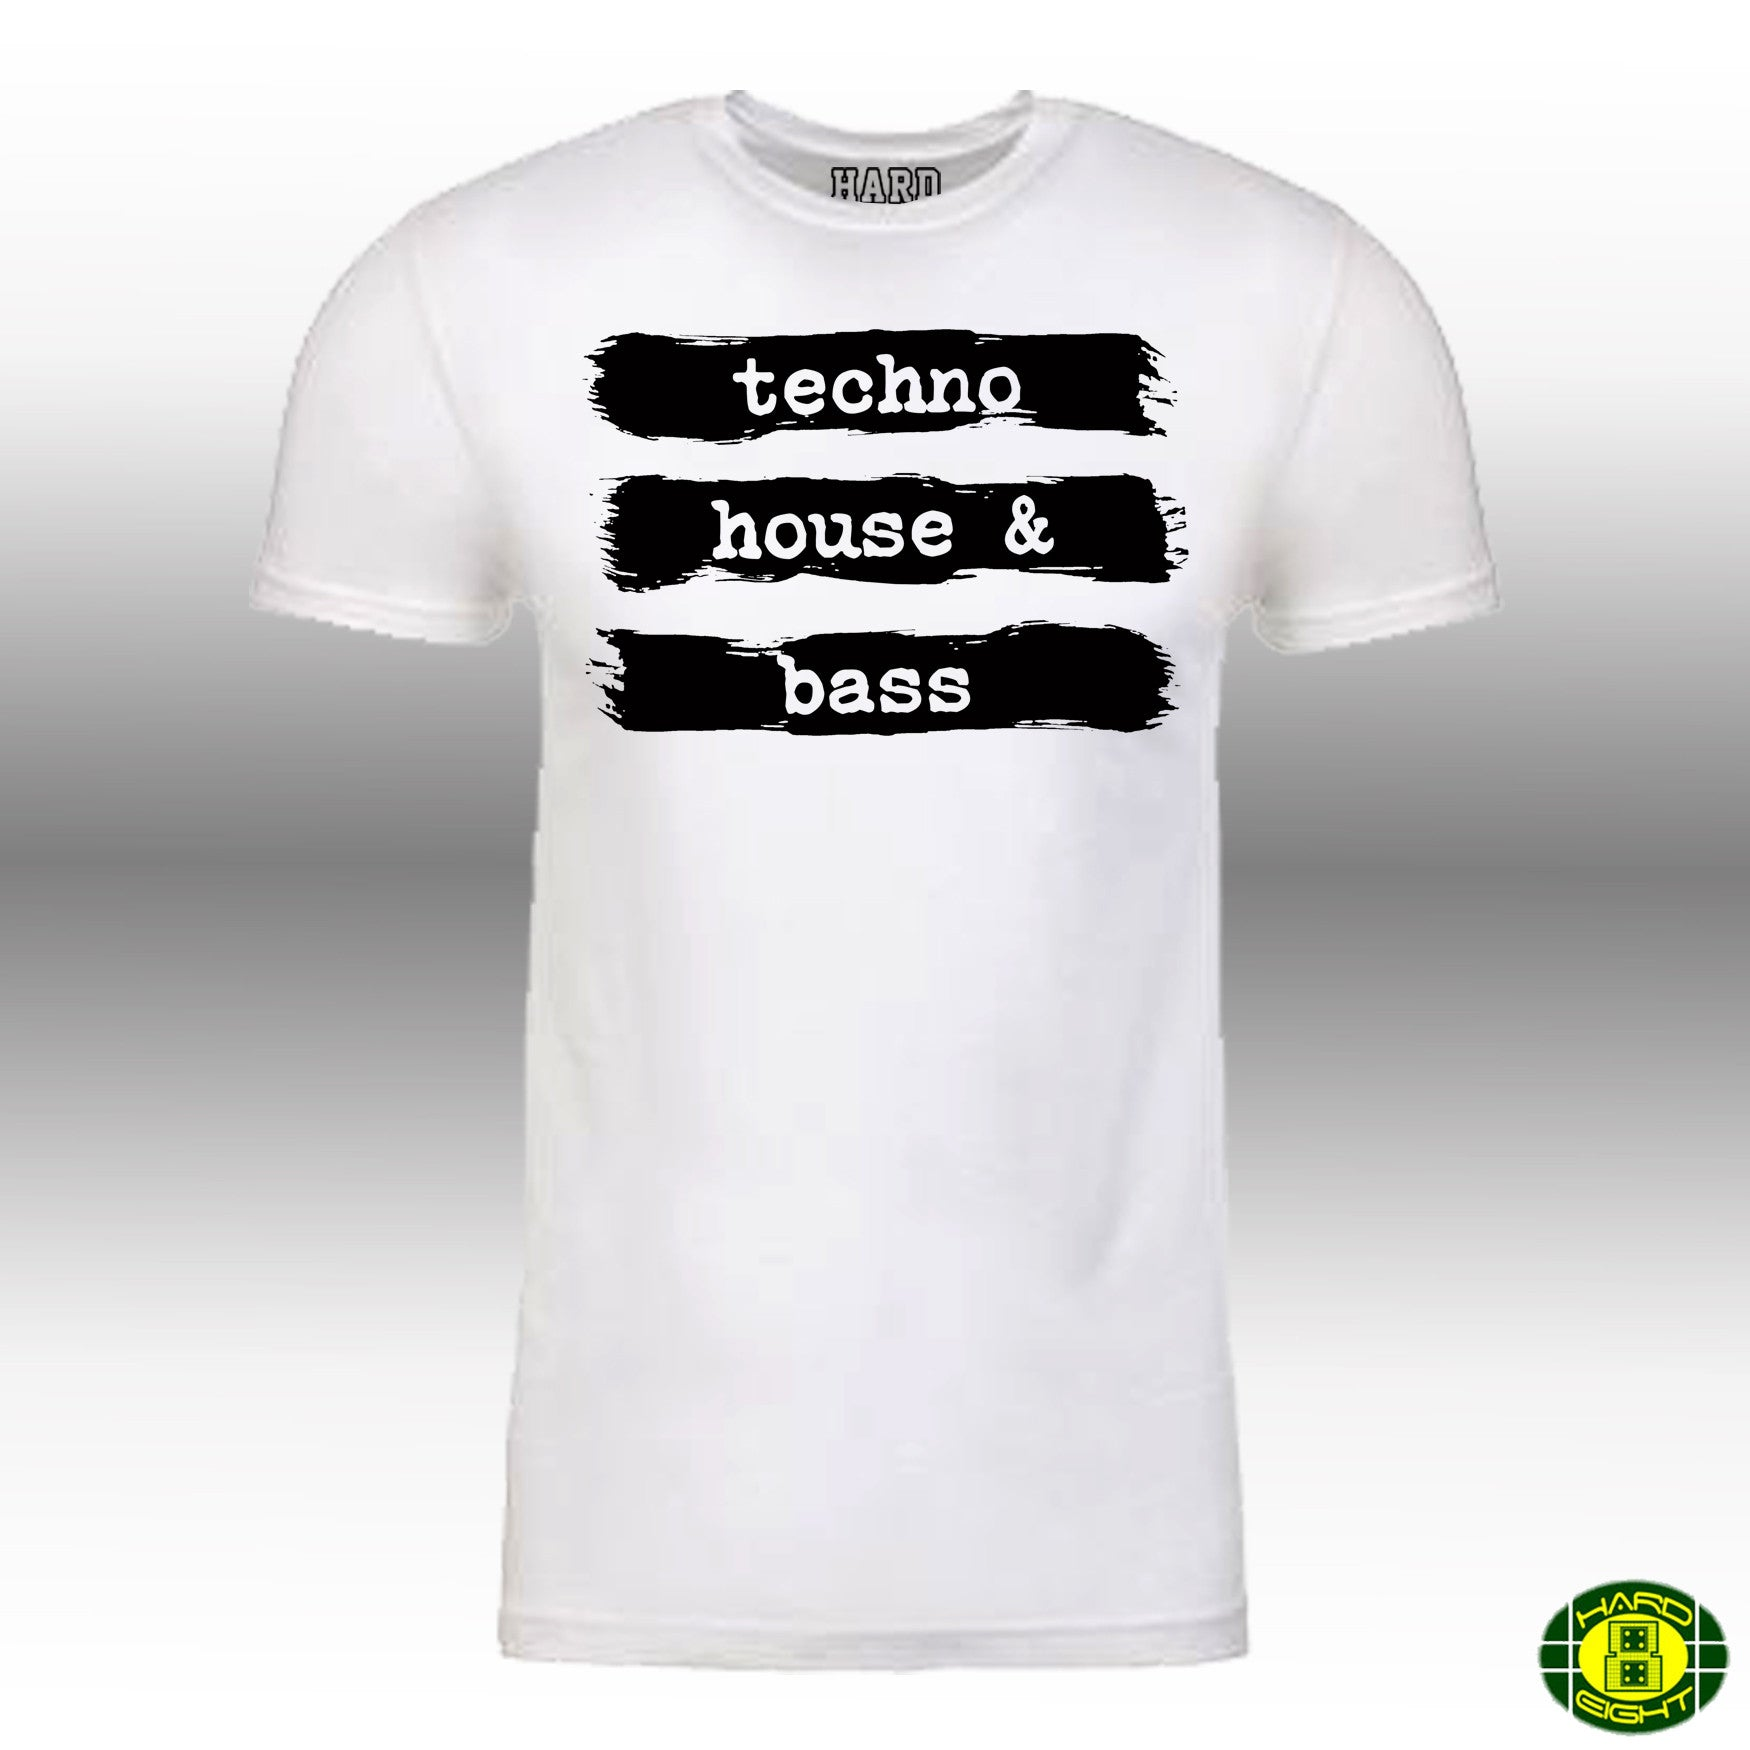 "MEN'S ""TECHNO HOUSE & BASS"" LAUNDERED COTTON BLEND Crew-Neck White/Black"